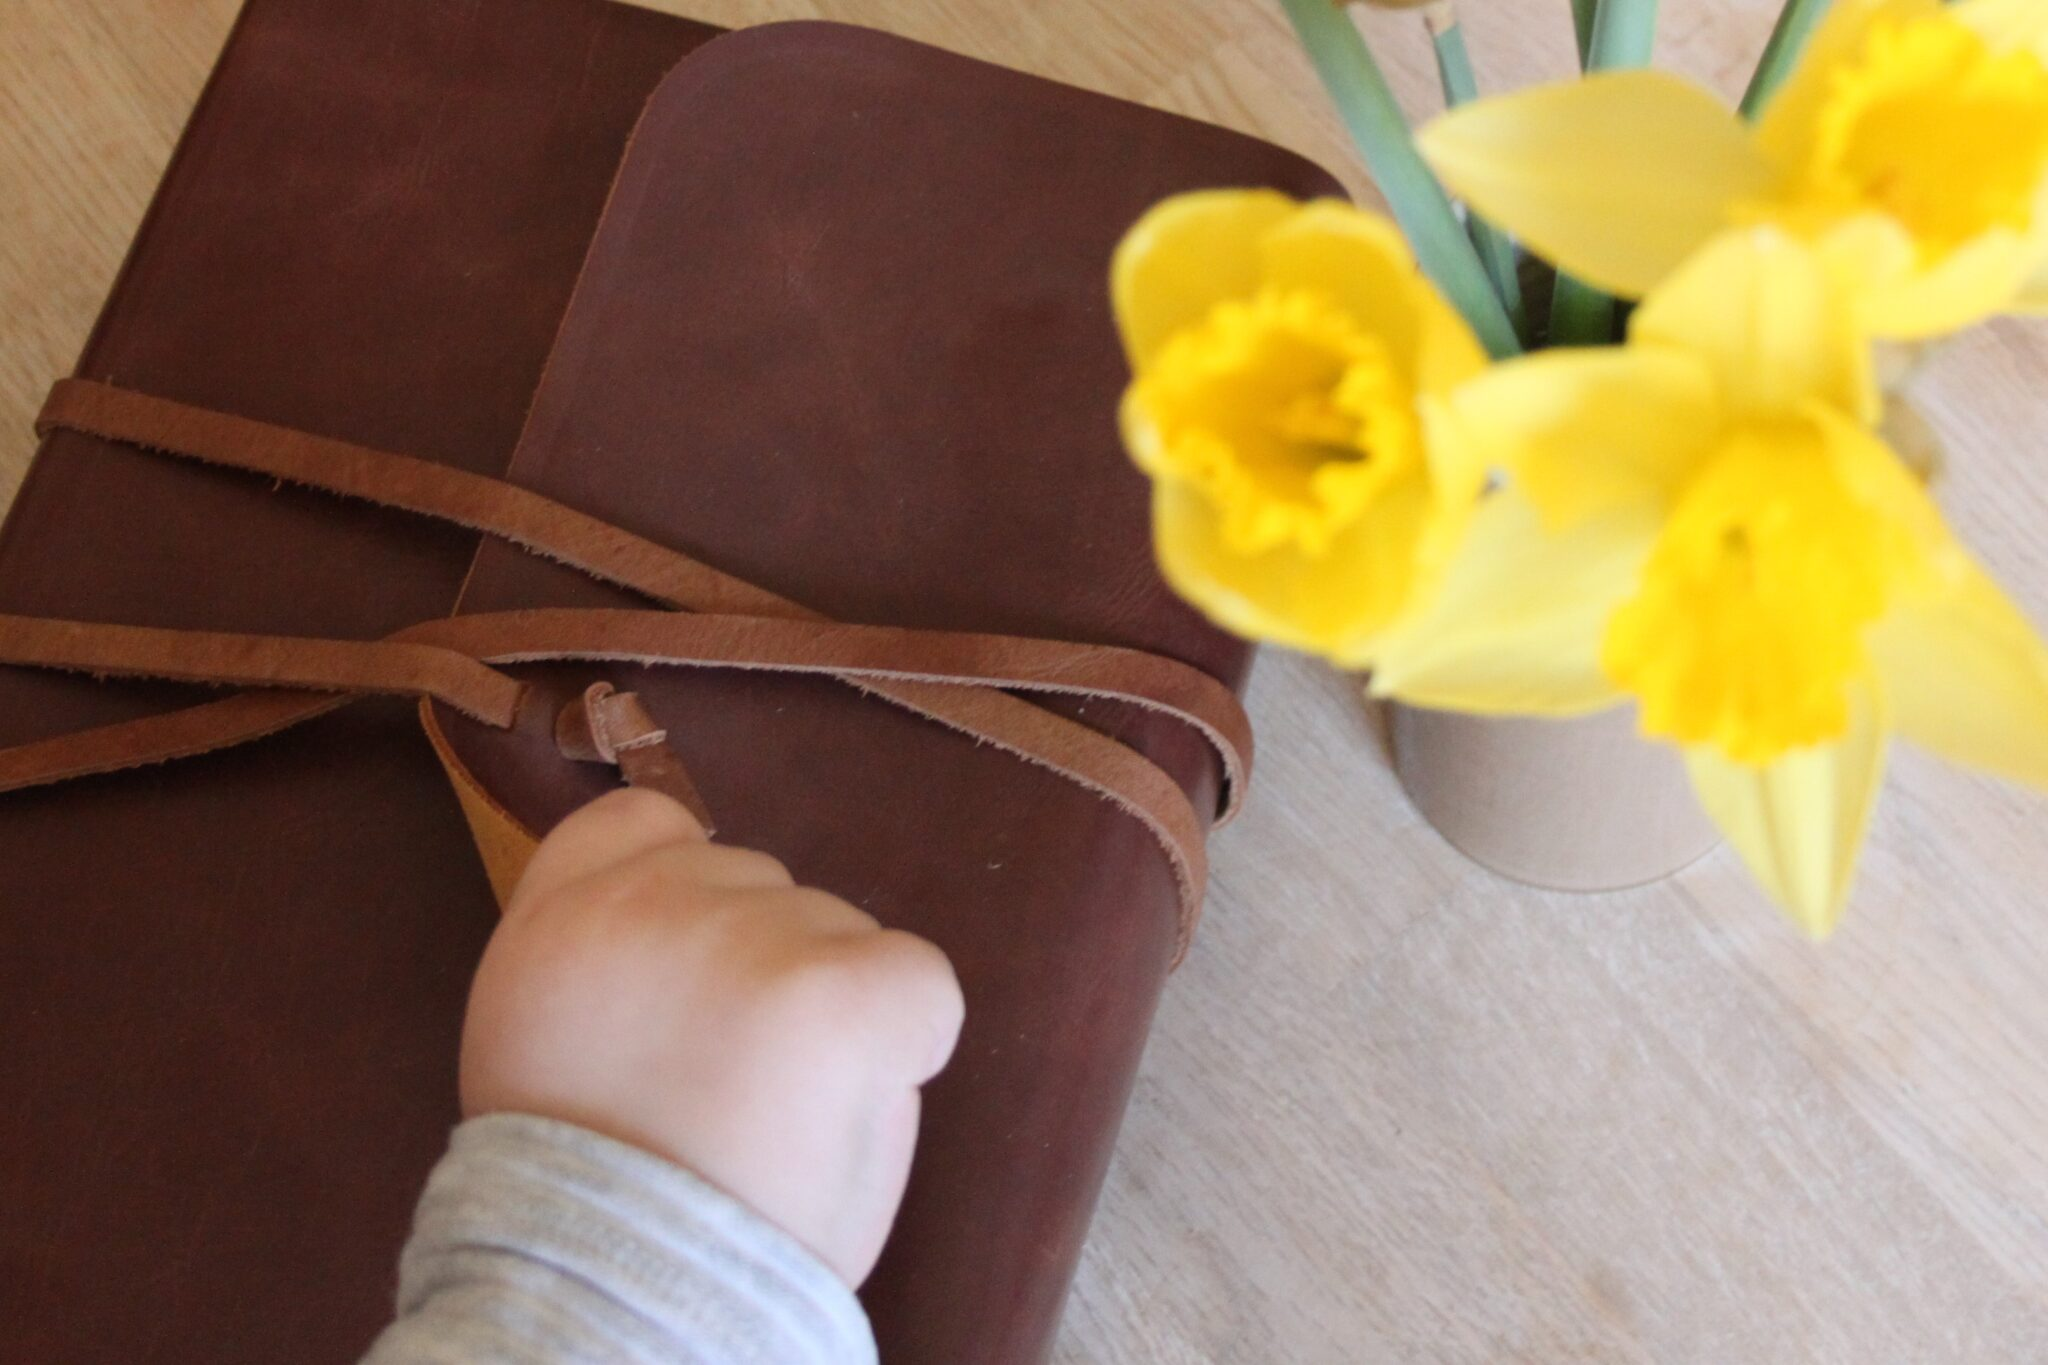 Child's hand on journaling bible and flowers beside it.